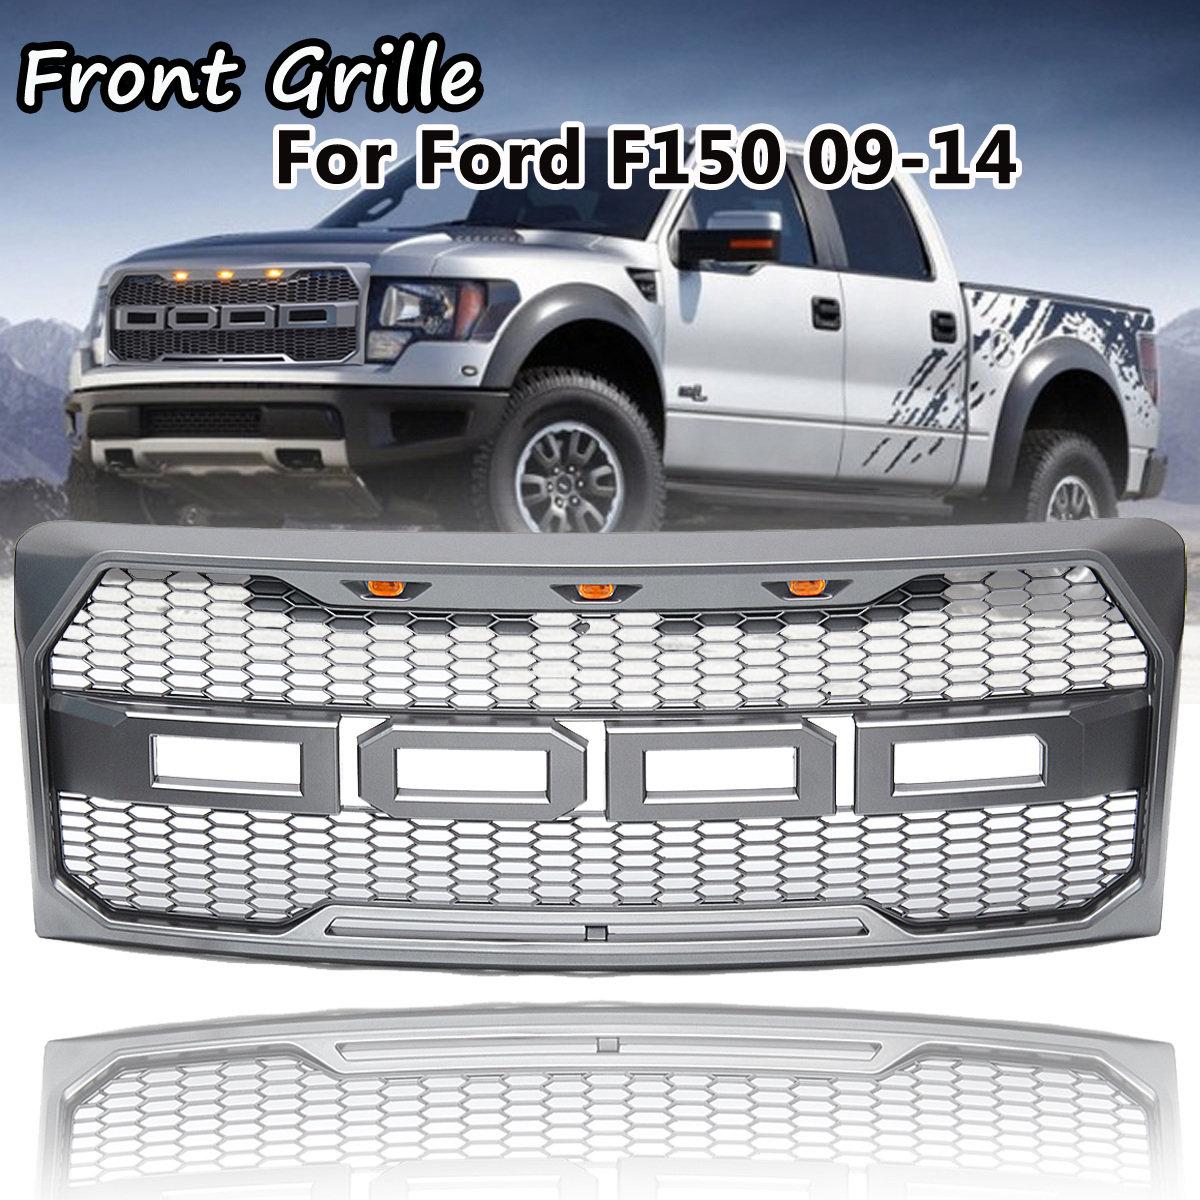 Raptor Style Car Front Grille With Emblem Housing Amber Led Light for Ford F150 F-150 2009 2010 2011 2012 2013 2014 auto body rear tail side trunk vinyl decals raptor graphics svt sticker for ford f150 2009 2010 2011 2012 2013 2014